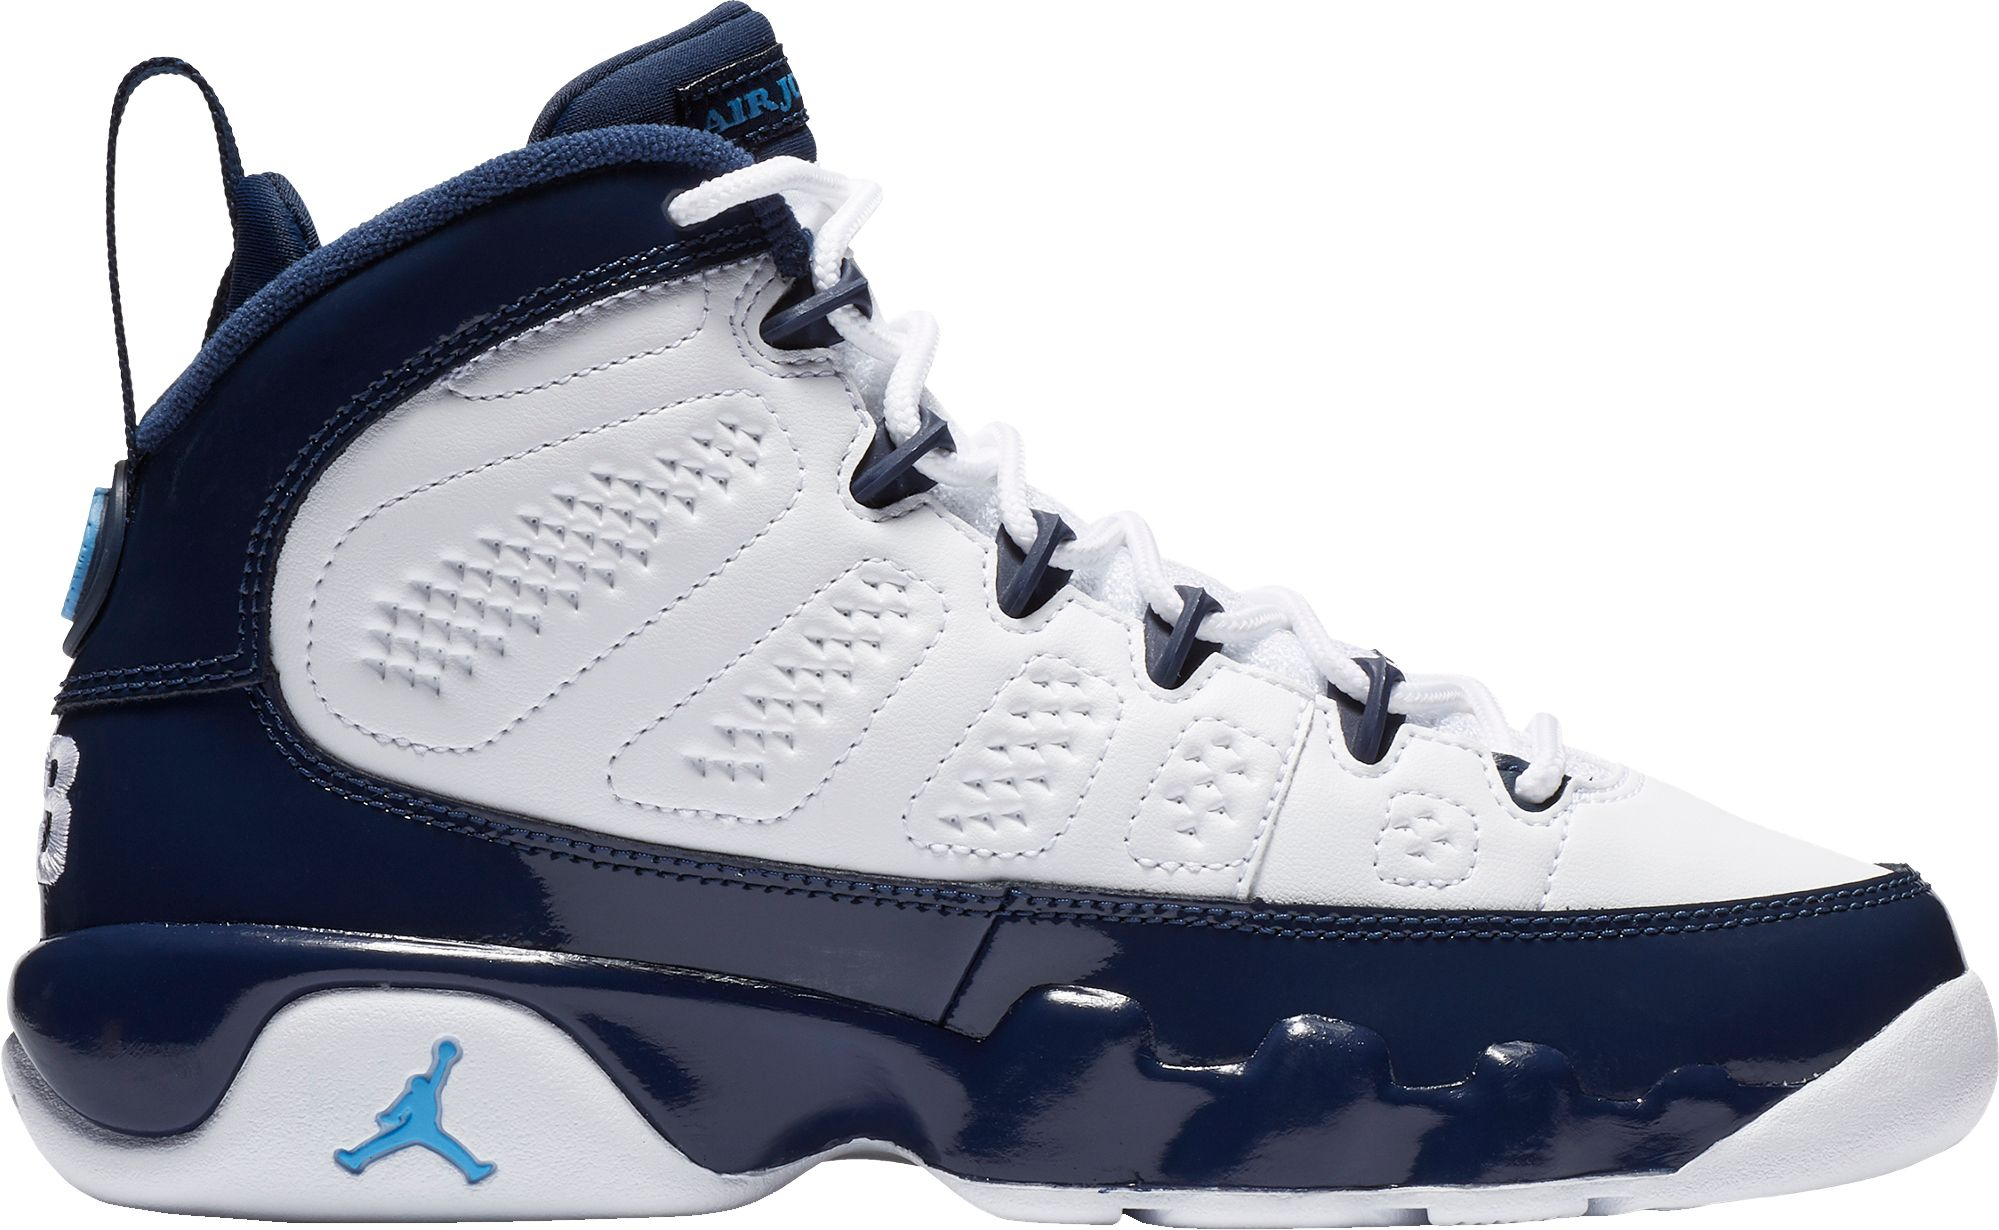 e3bf2ee75f0 Jordan Kids' Grade School Air Jordan 9 Retro Basketball Shoes in ...